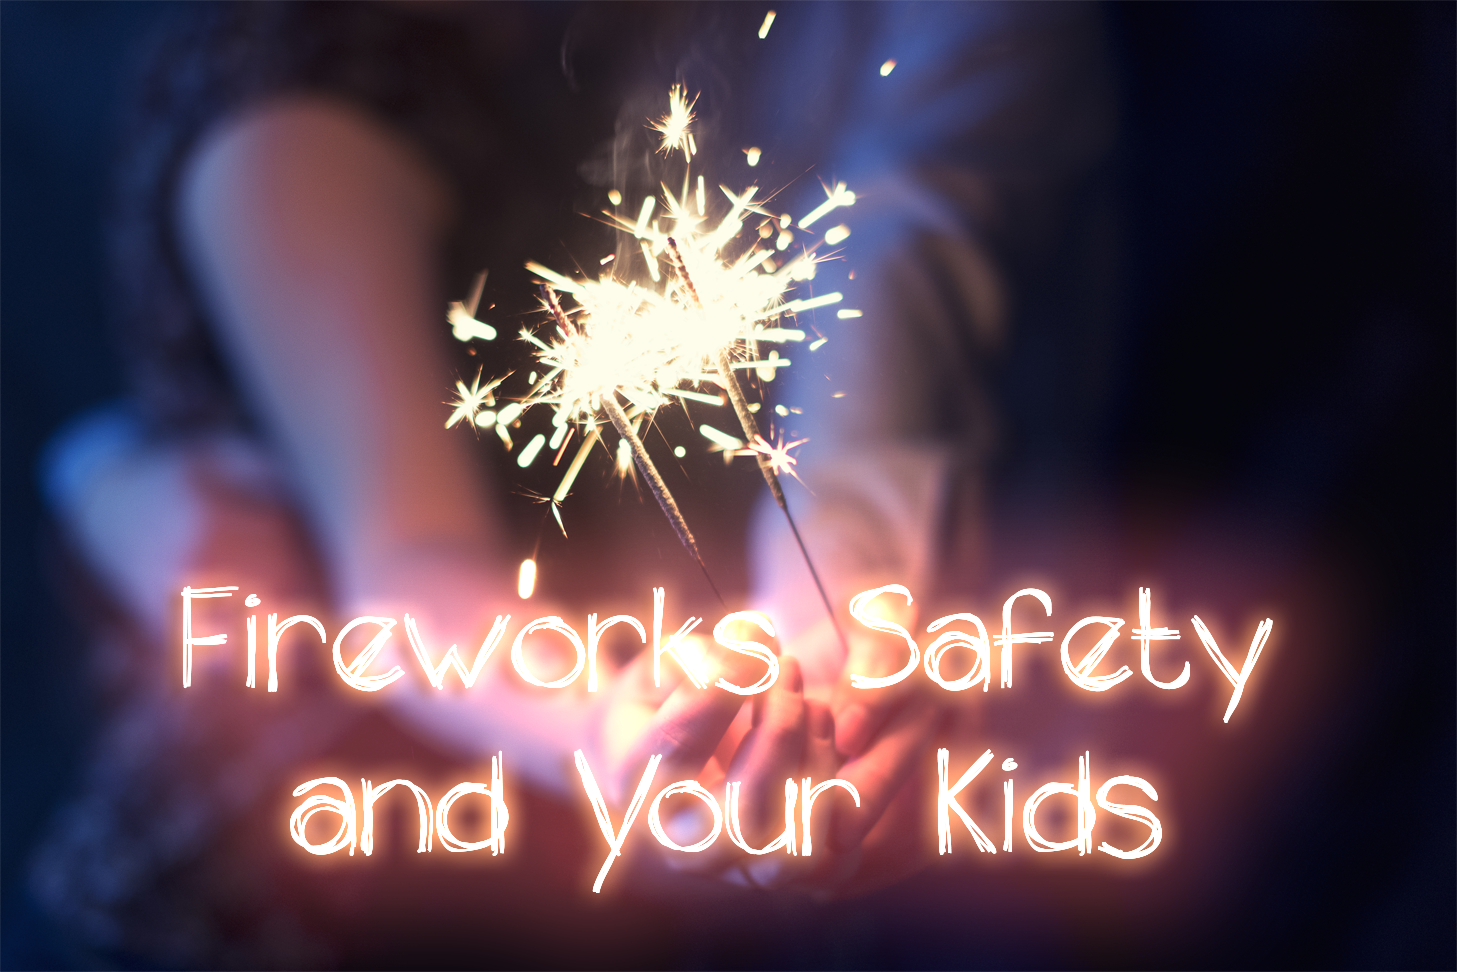 Firework Safety for Kids: What You Need To Know